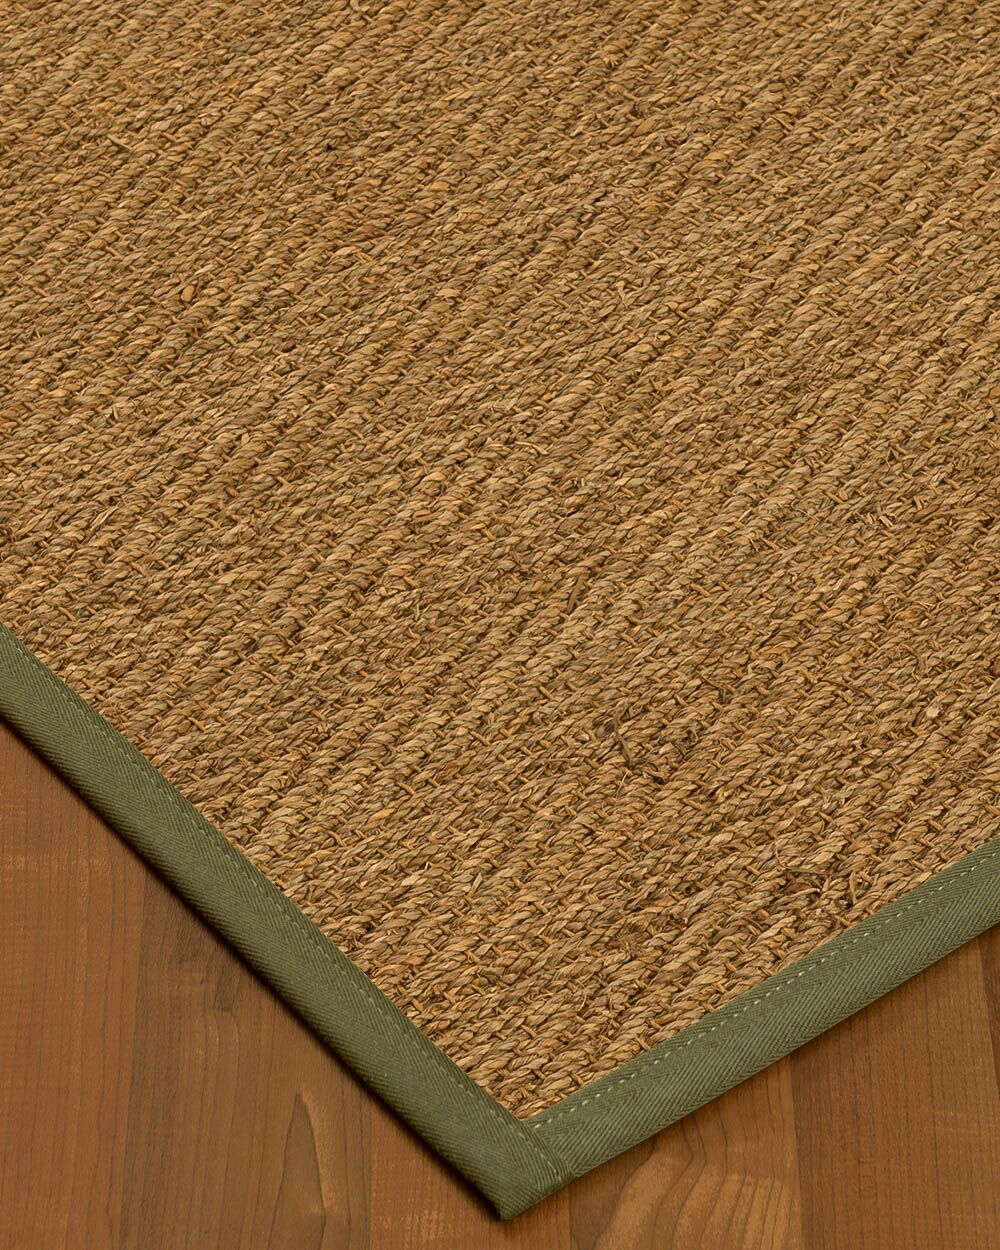 Chavarria Border Hand-Woven Beige/Fossil Area Rug Rug Size: Rectangle 9' x 12', Rug Pad Included: Yes